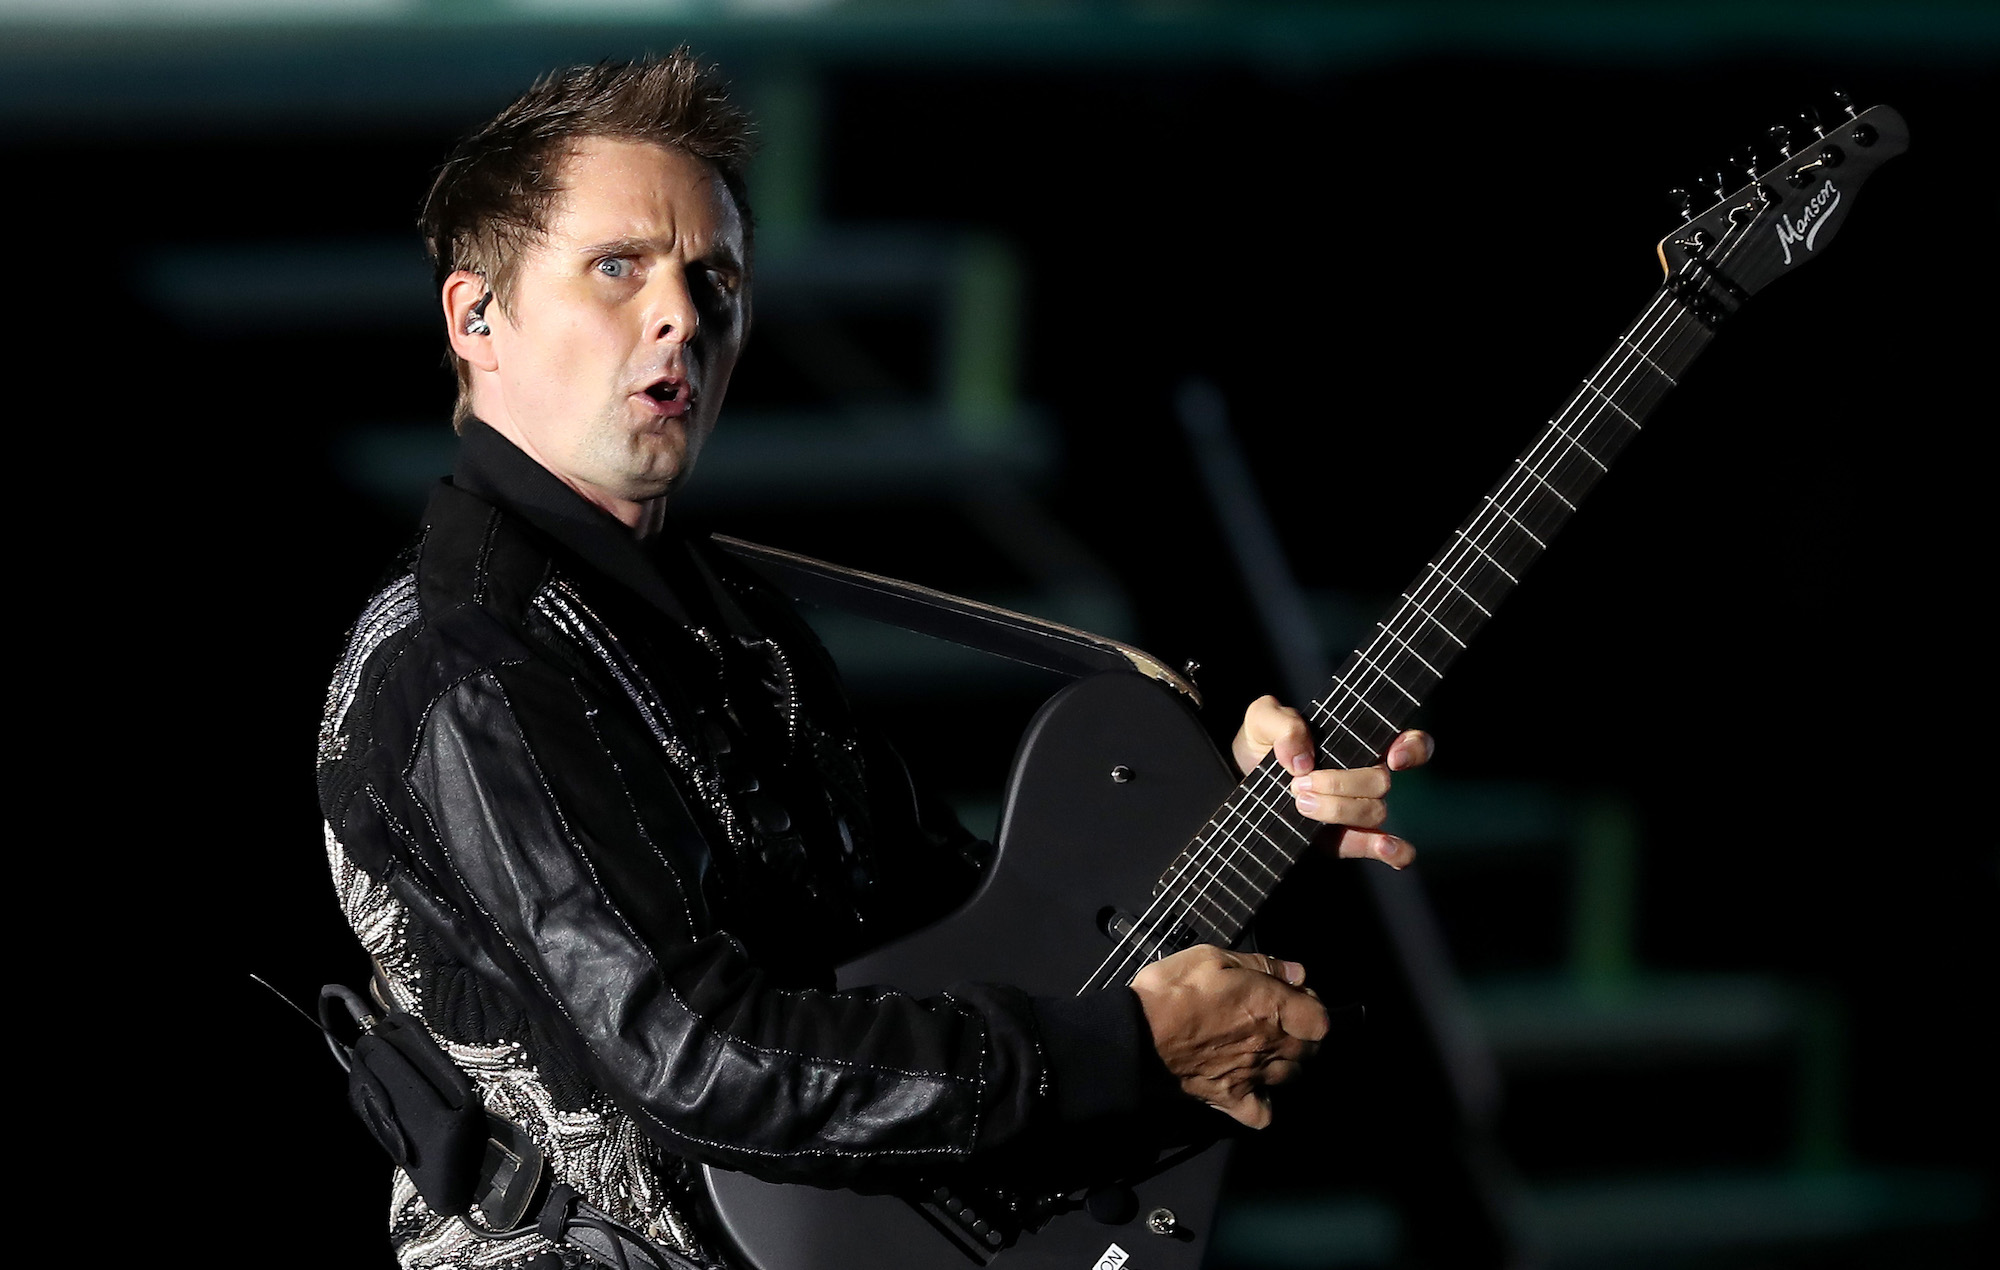 Muses Matt Bellamy says hes fundamentally against party